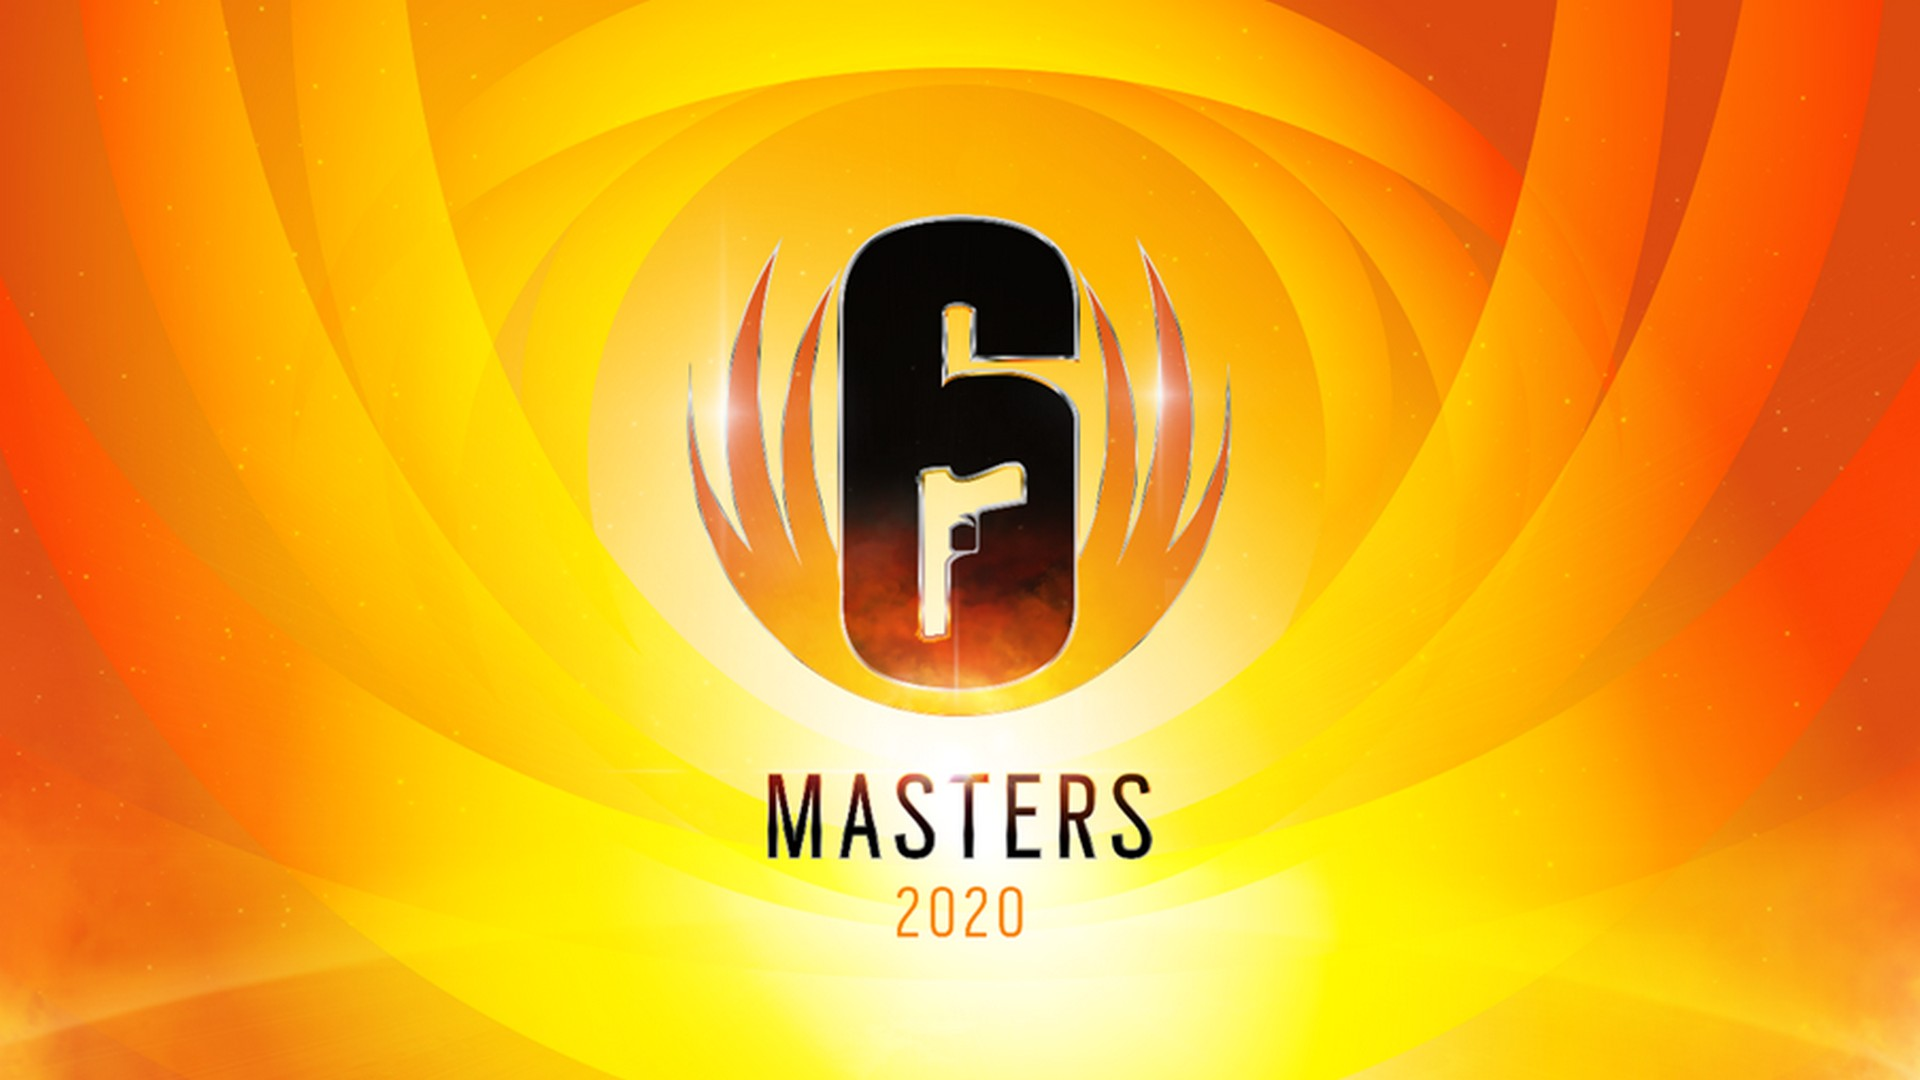 Ubisoft Announces SIX MASTERS 2020 With A $50,000 Prize Pool